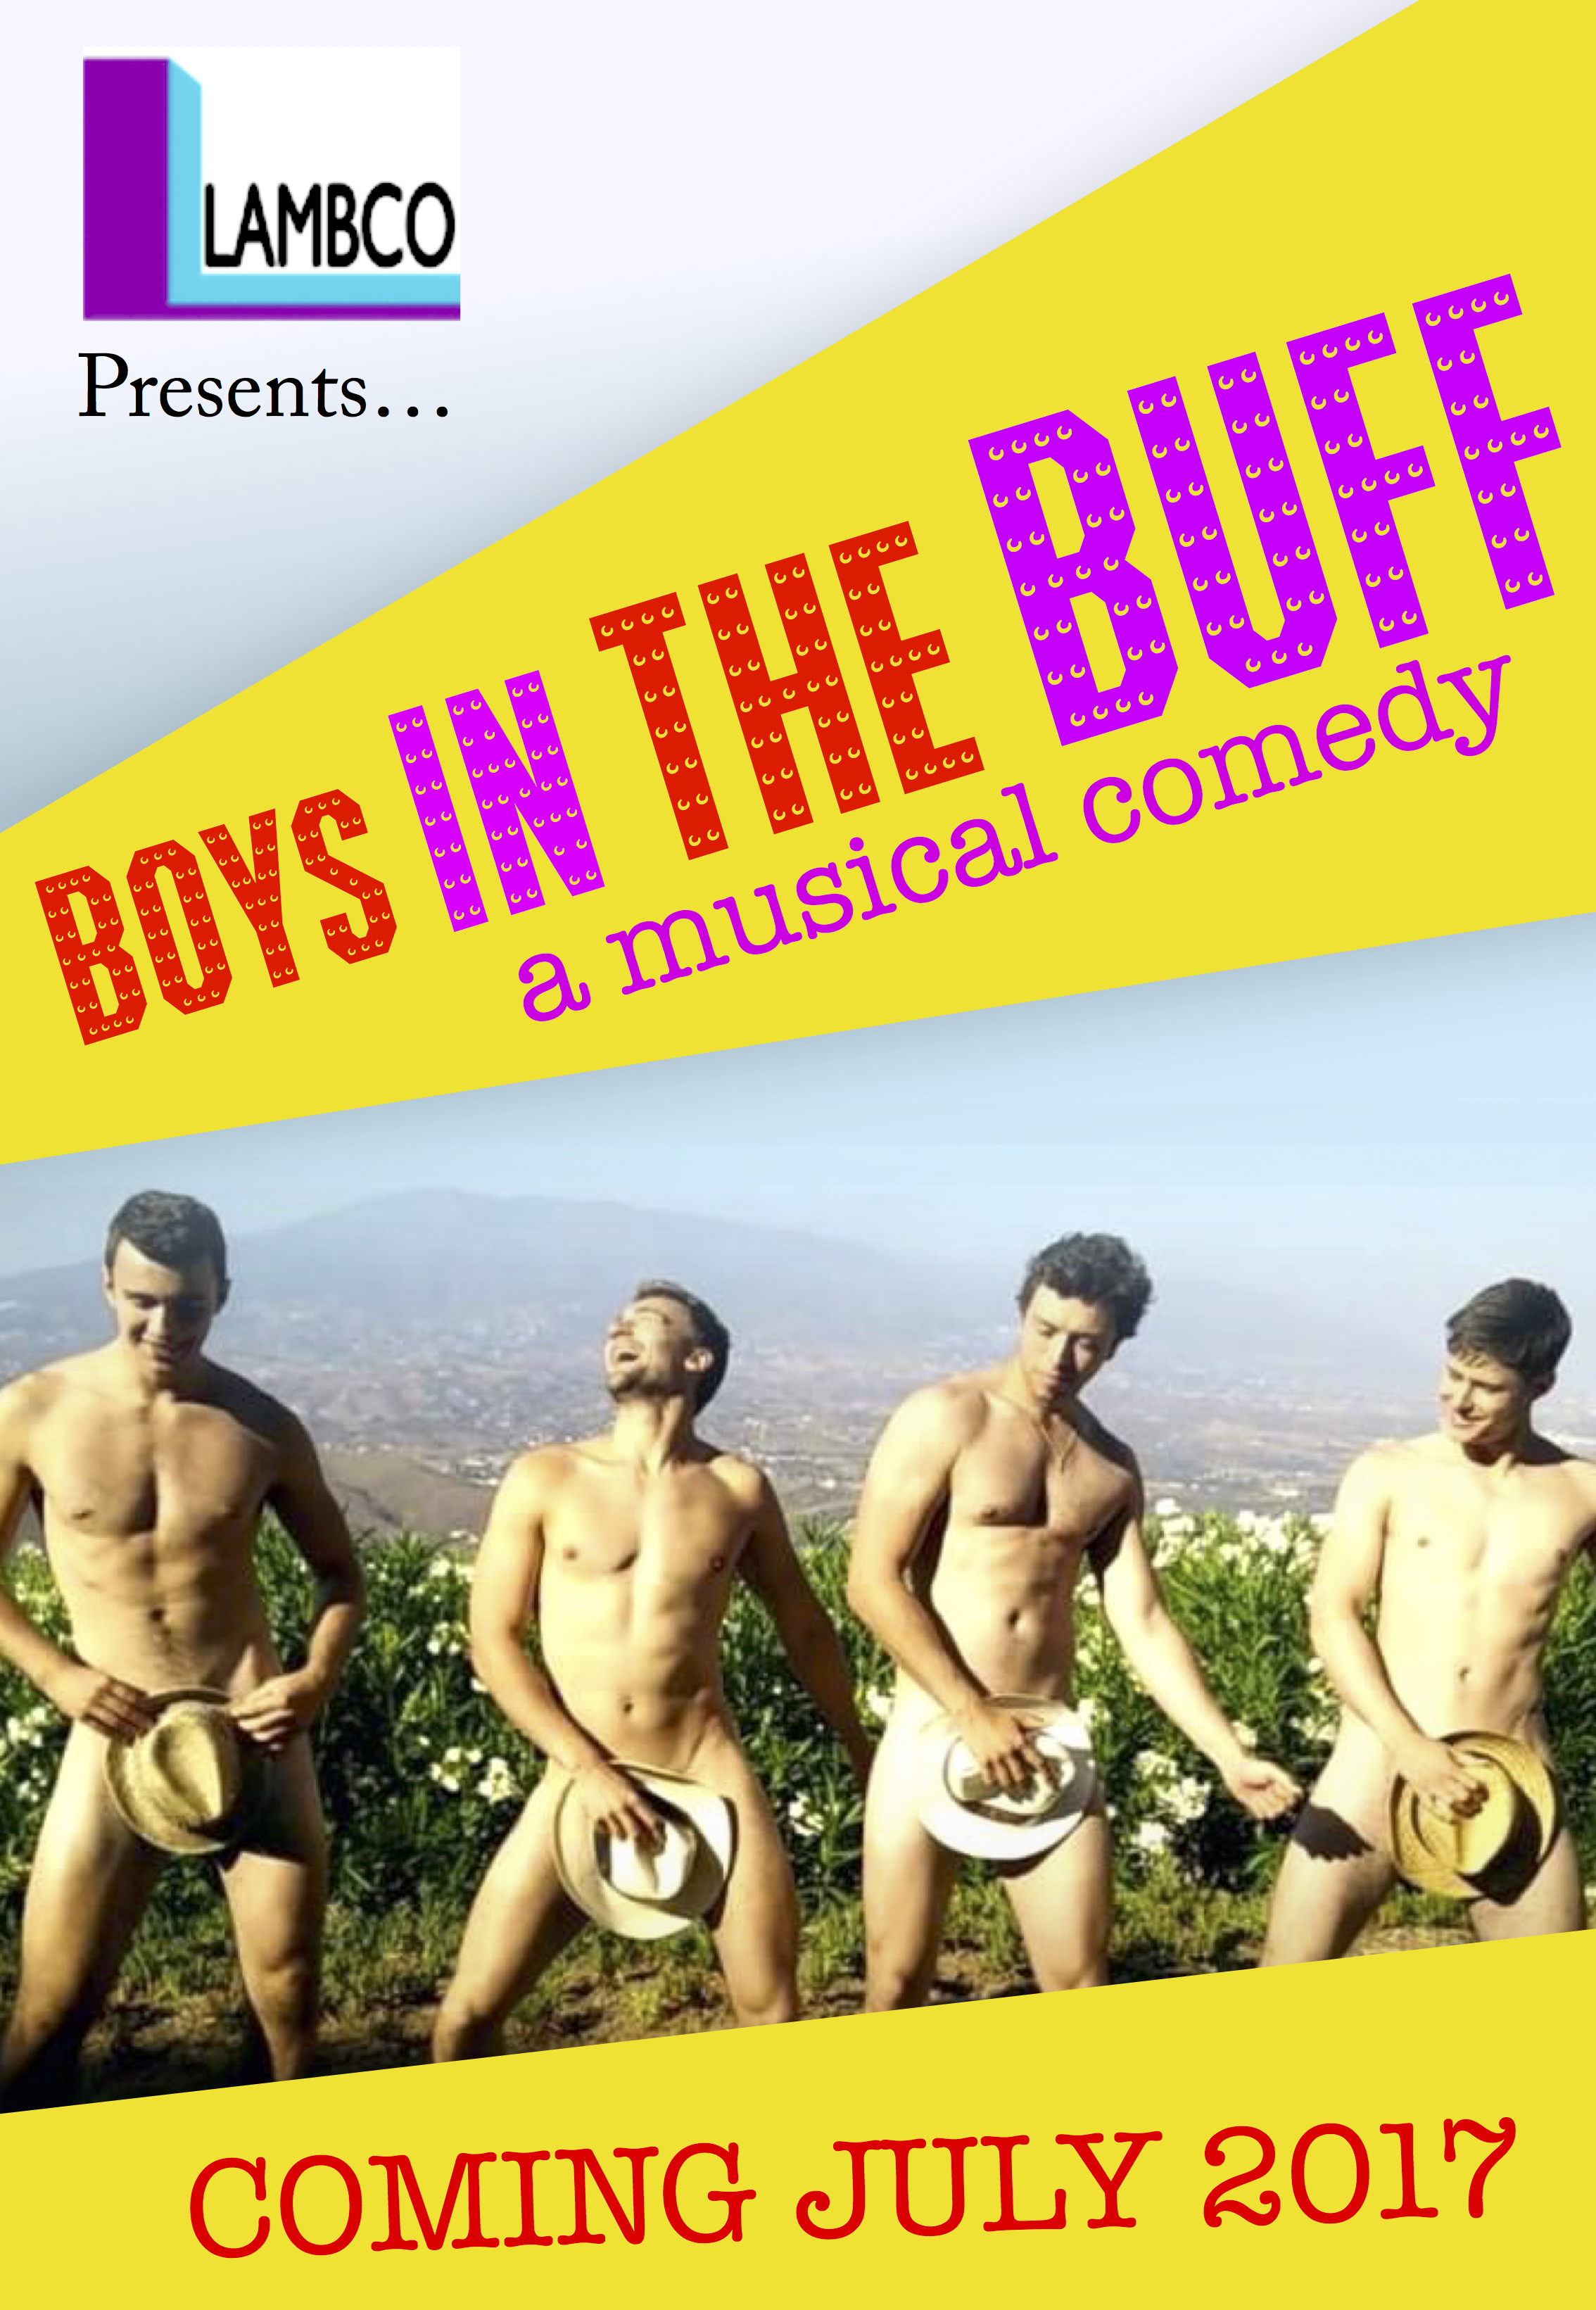 Boys in the Buff